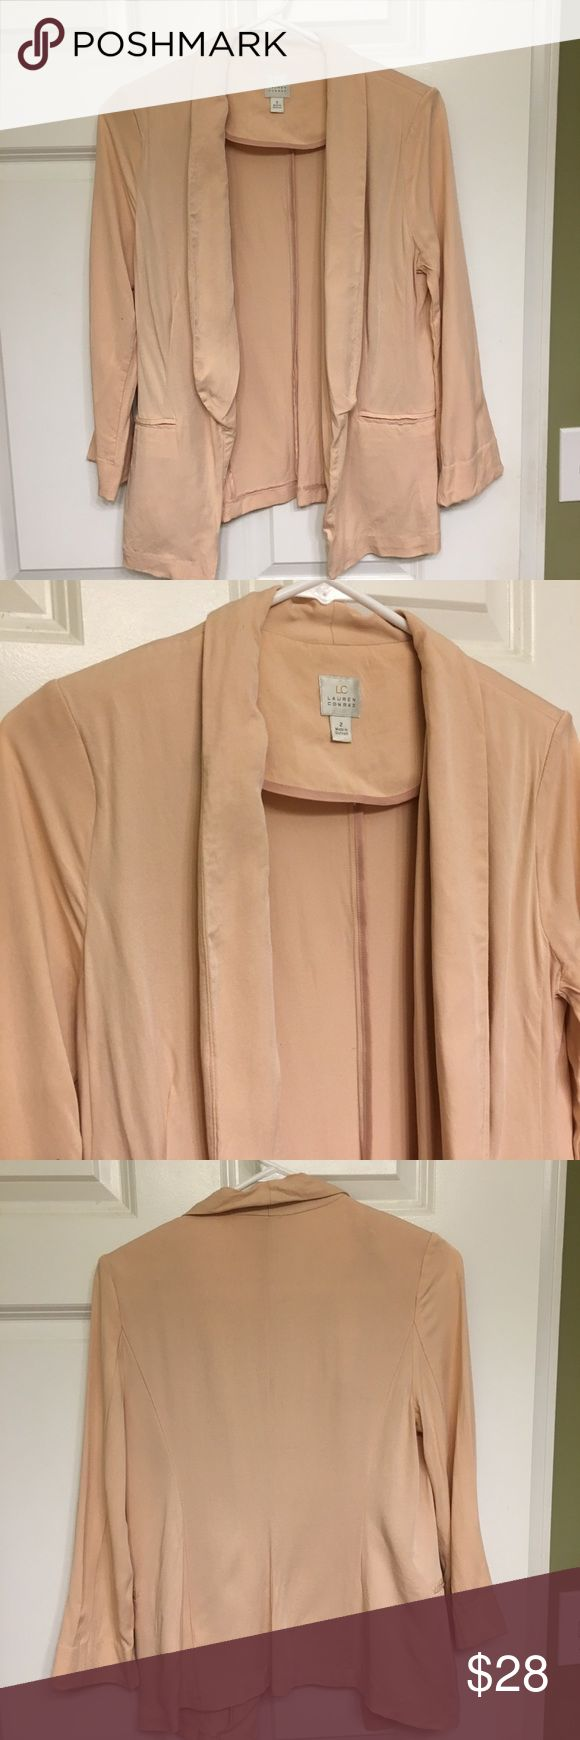 Peach Blazer Great for work! Worn once for an interview. LC Lauren Conrad Jackets & Coats Blazers